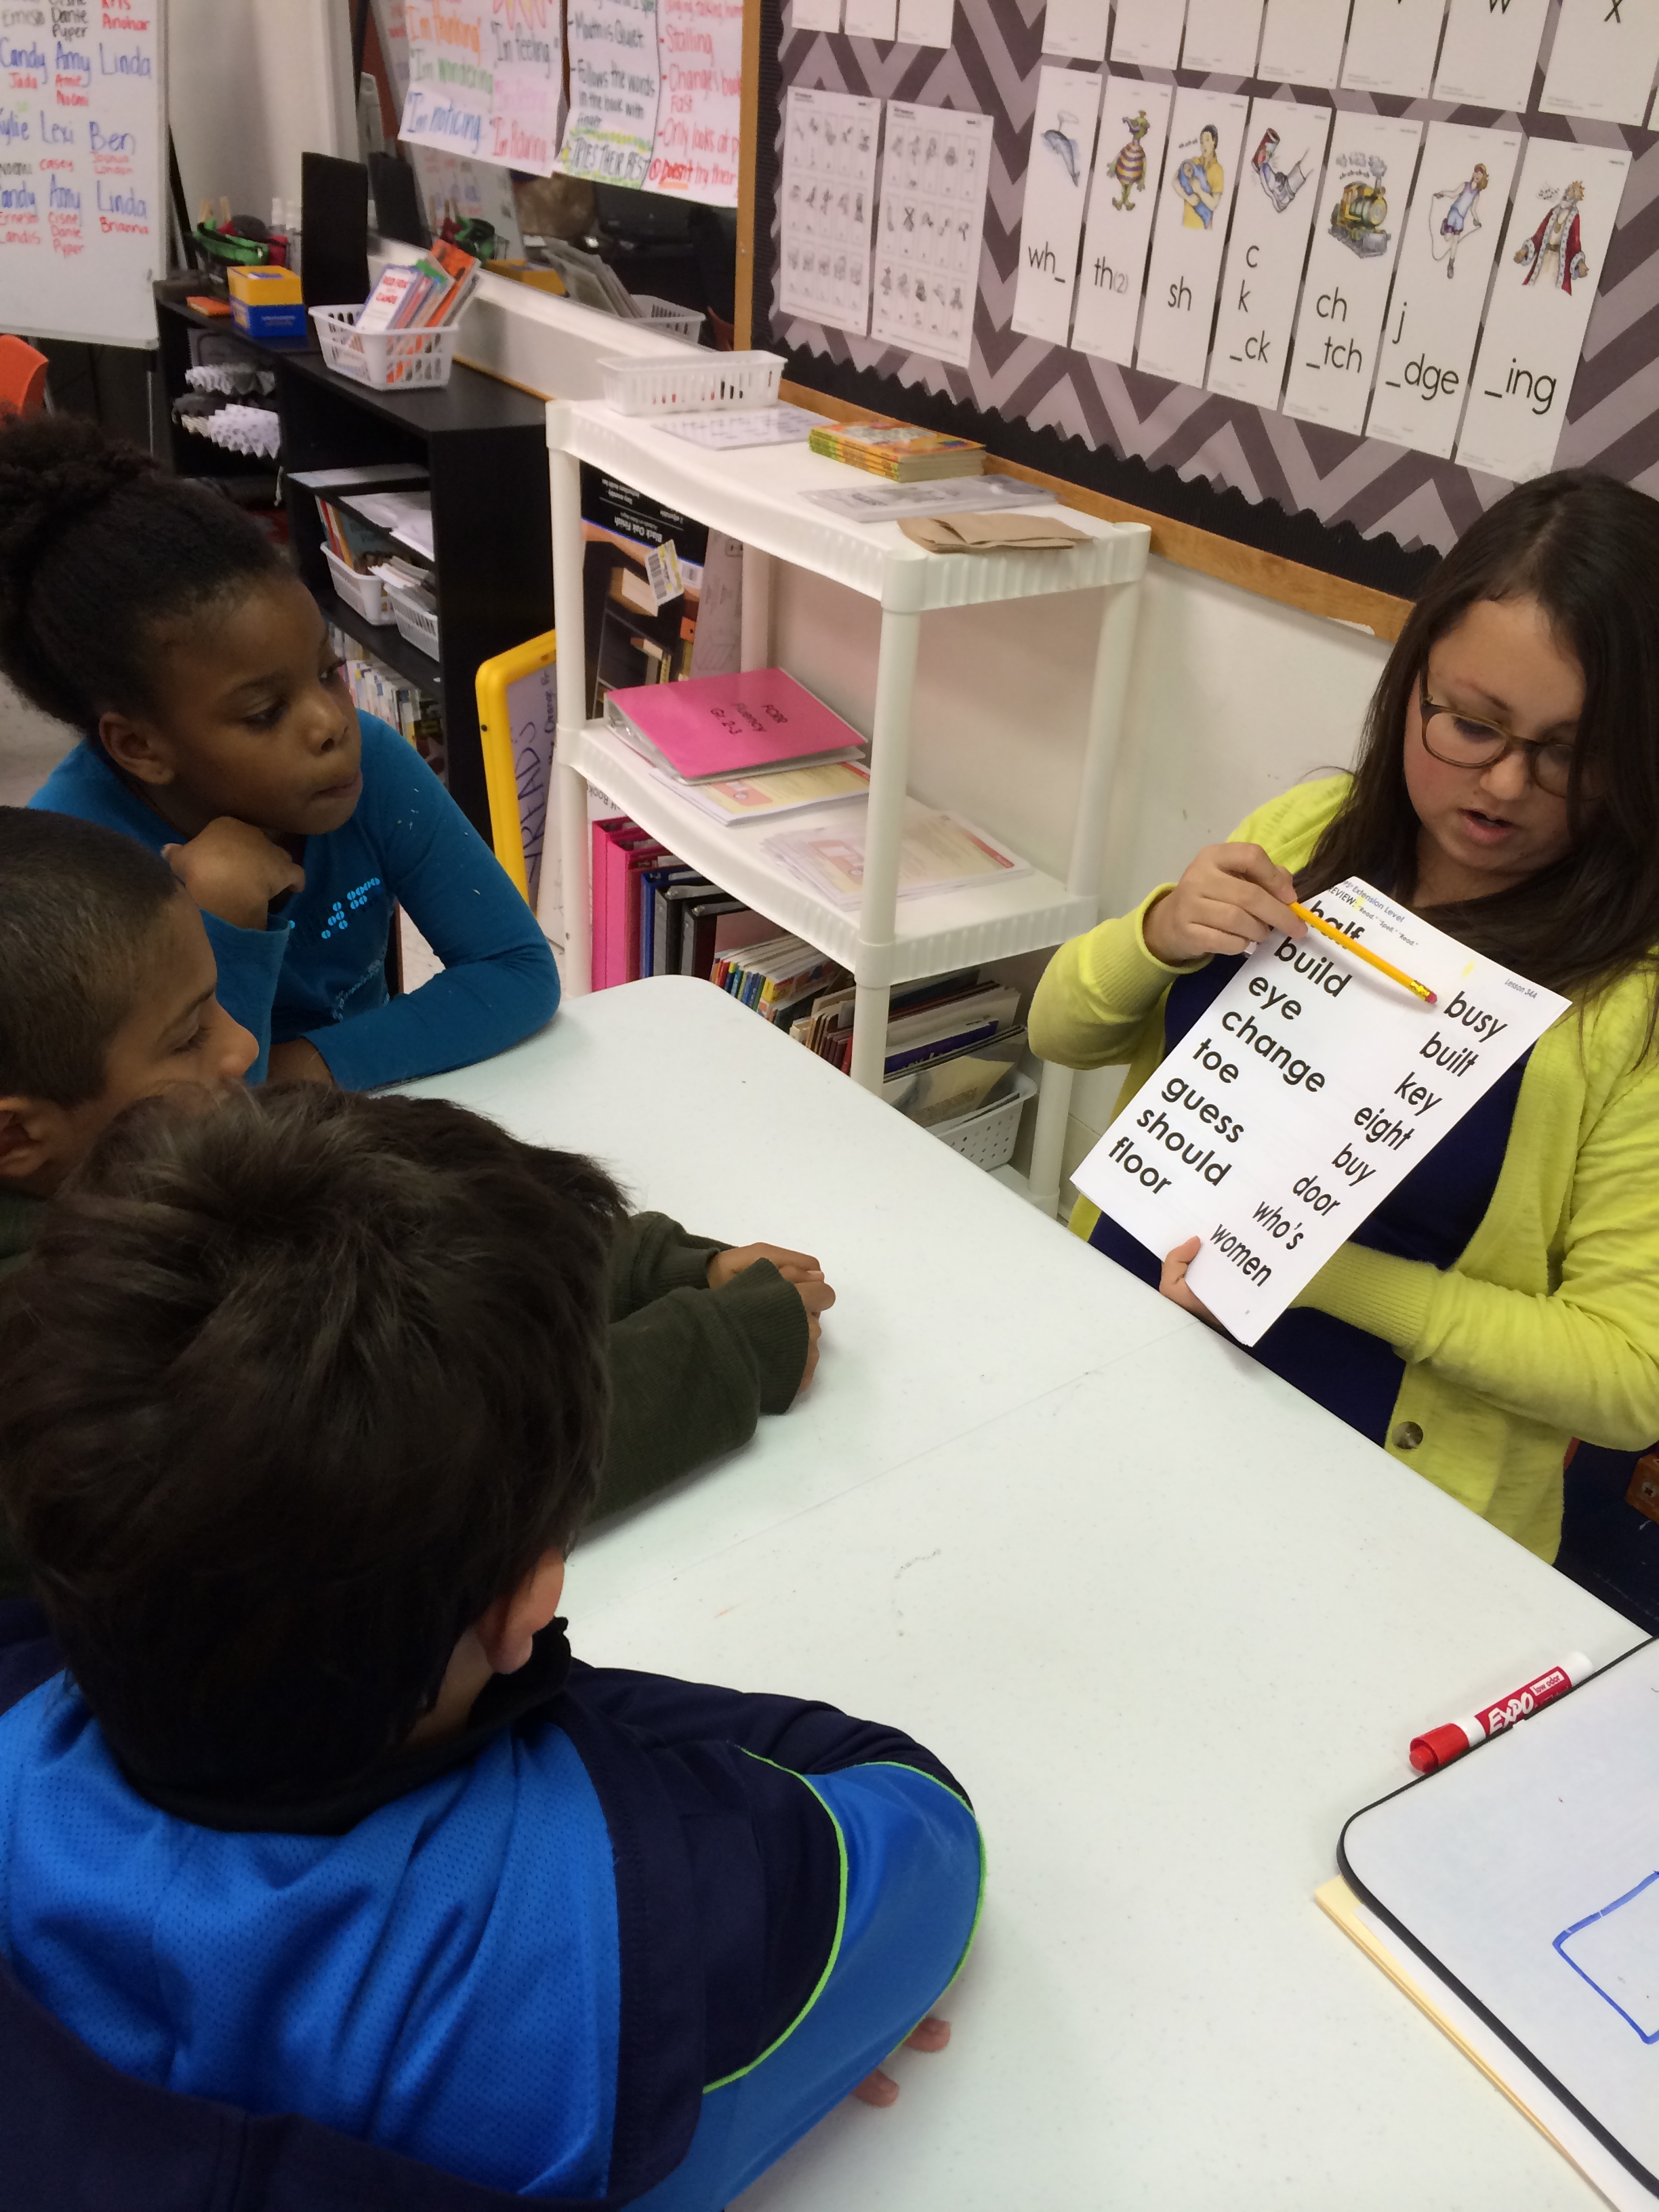 grouping practices in the elementary reading Ability grouping is clearly a practice that is misaligned with advancing  at least  one team of elementary teachers at the institute was convinced  meaning you  can group students by various reading abilities into one group if.